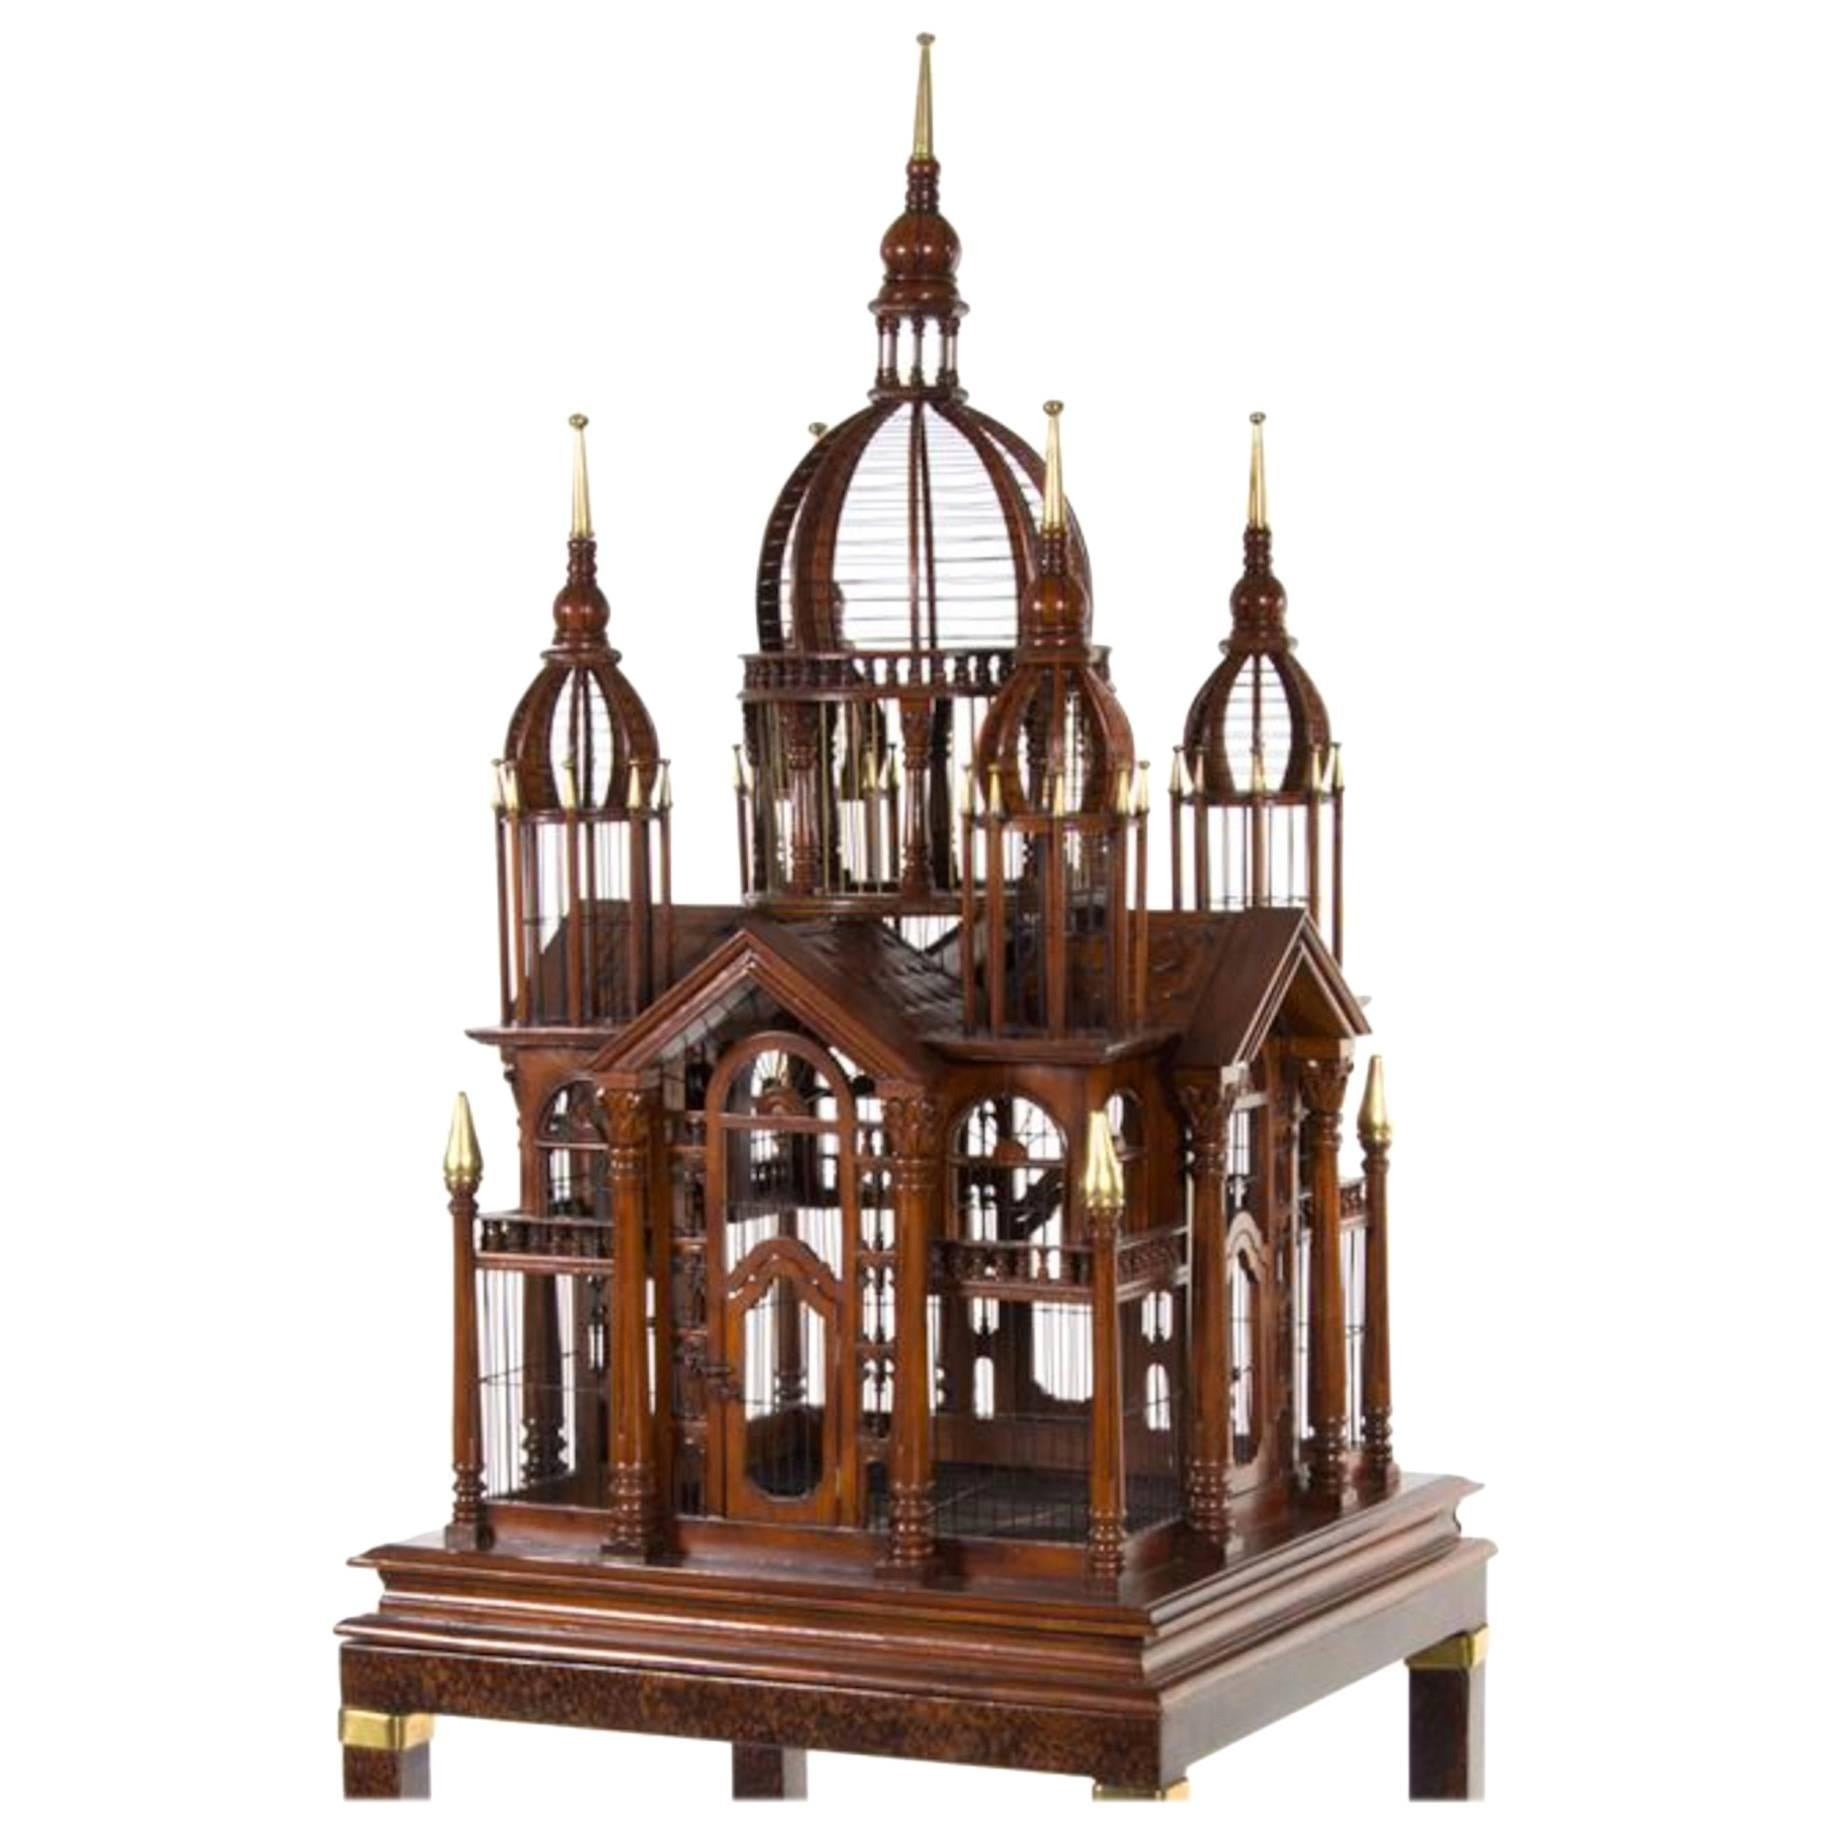 Monumental English Mahogany Bird Cage on Stand, Brass Banding And Finials.